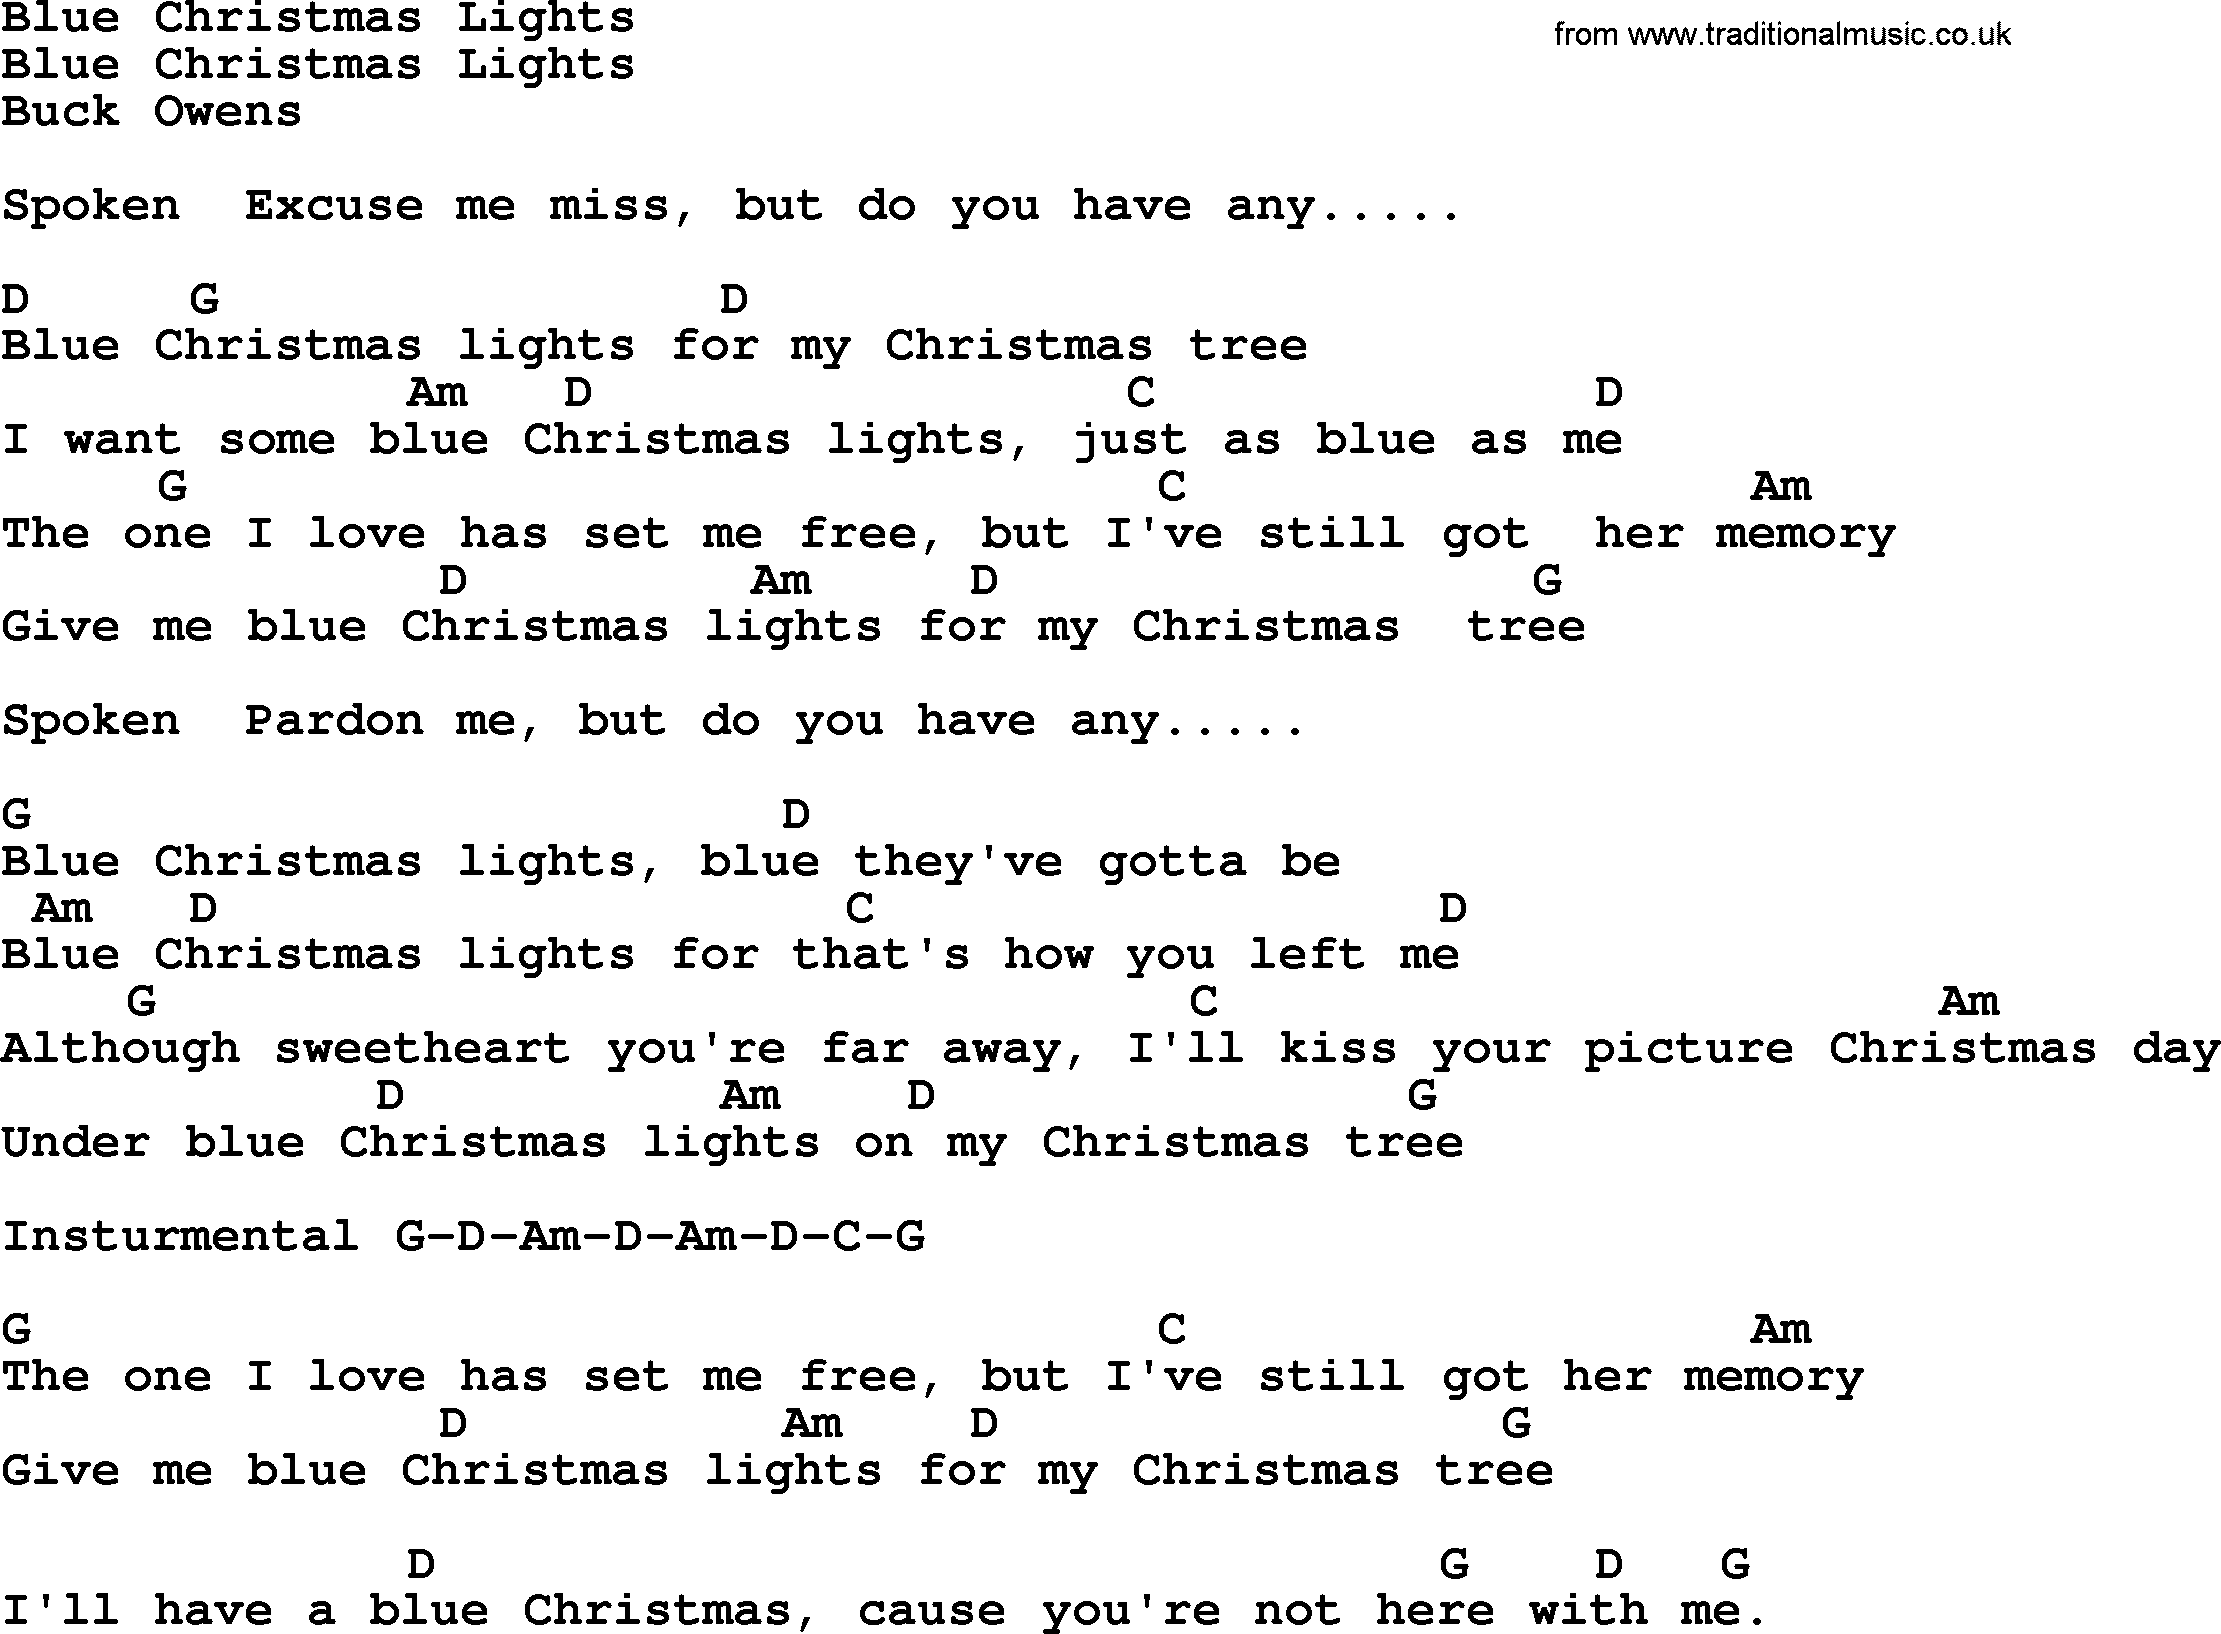 bluegrass song blue christmas lights lyrics and chords - I Ll Have A Blue Christmas Lyrics